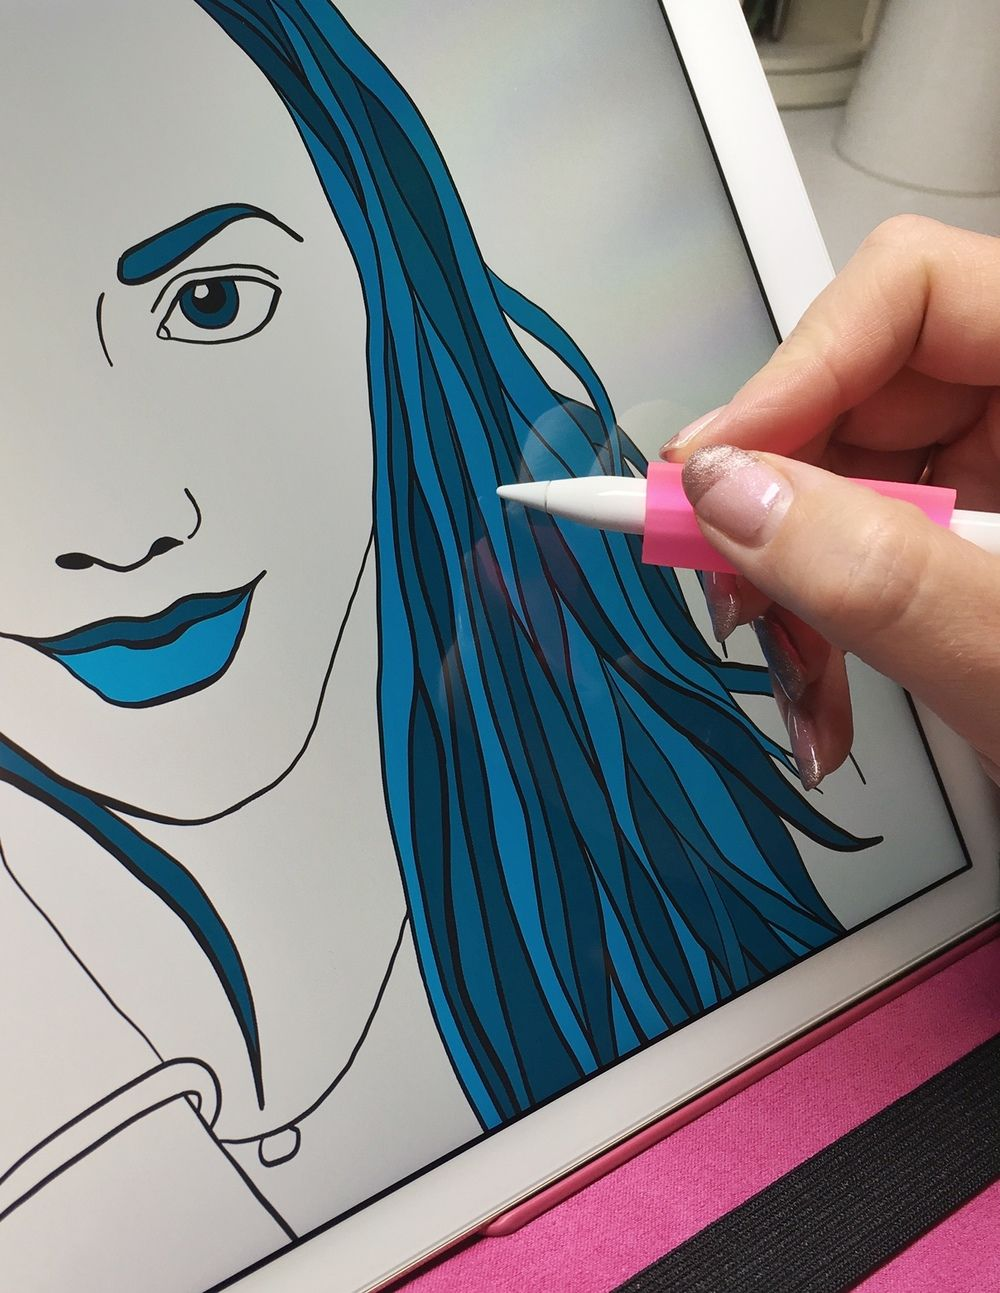 Top 5 Ipad Pro Apps For Artists Brown Paper Bunny Studio Ipad Pro Apps Ipad Pro Art Art Apps